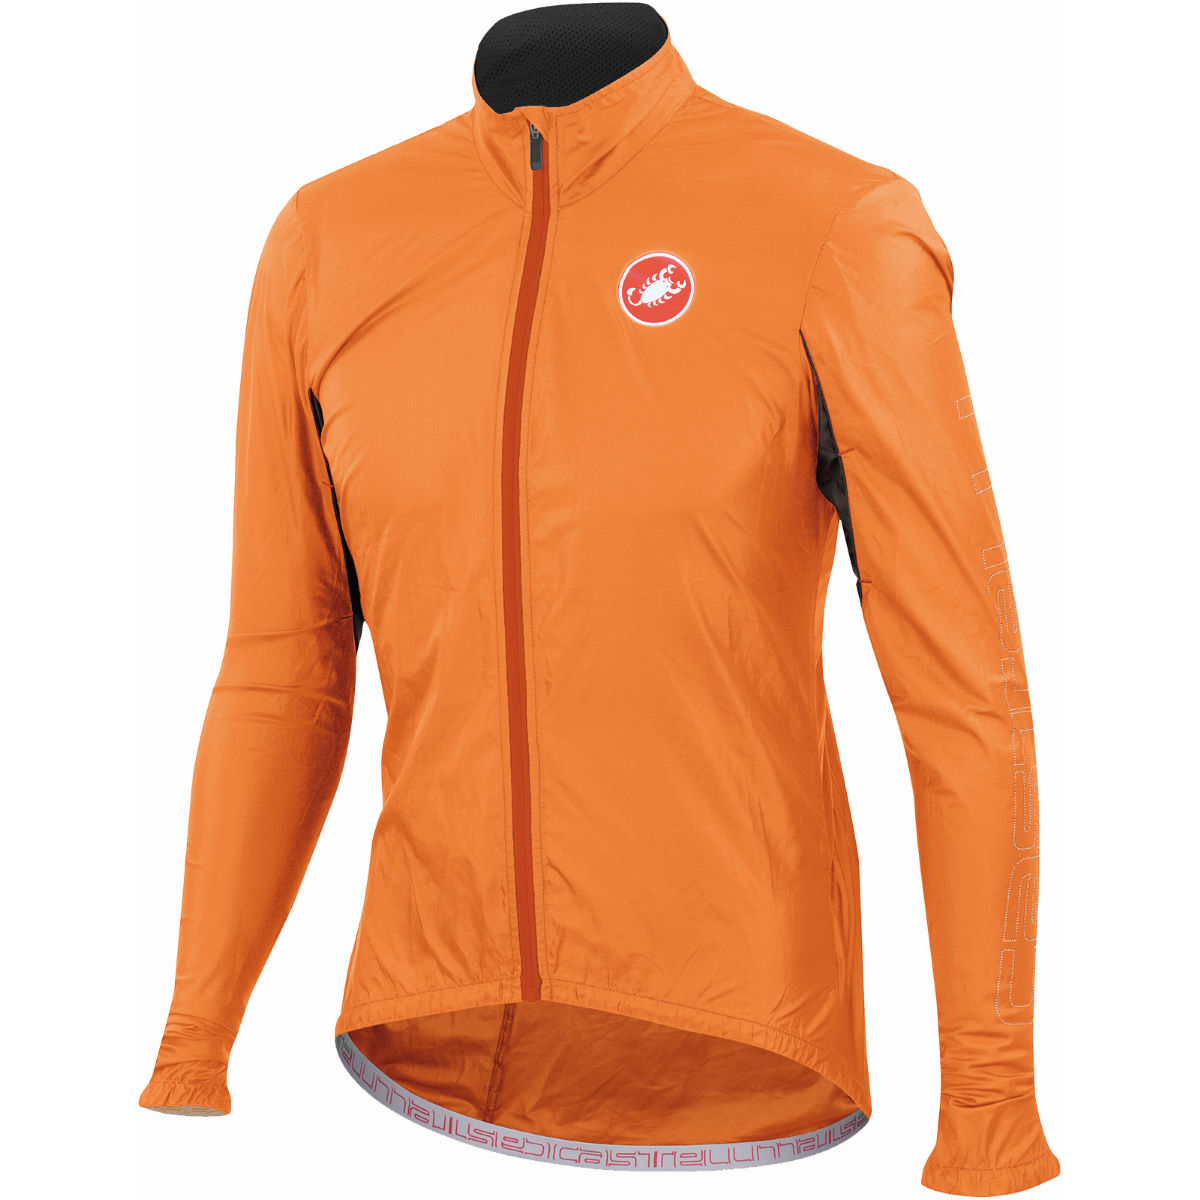 Veste Castelli Velo - XXL Orange Coupe-vents vélo